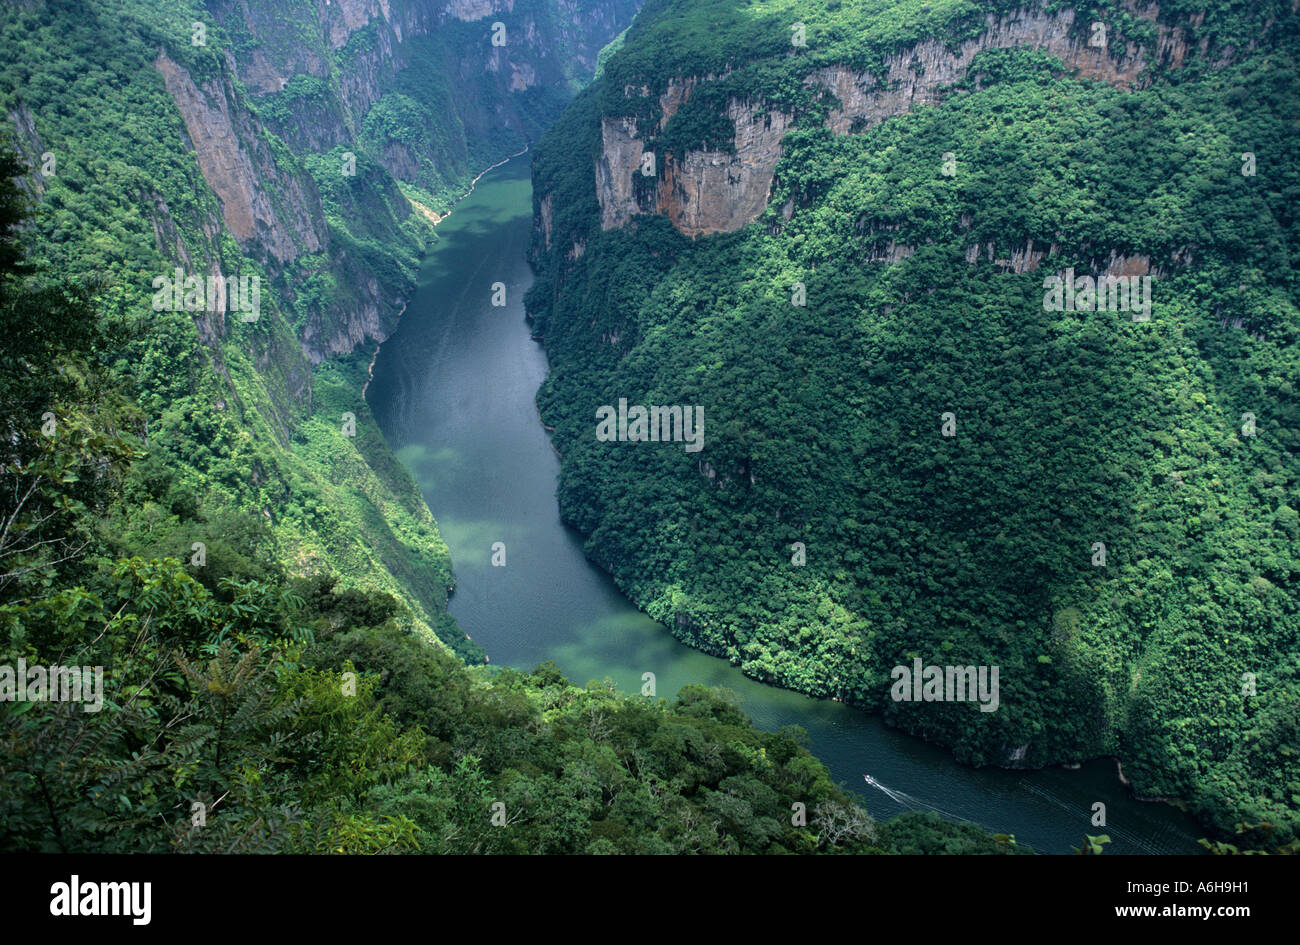 Canyon del Sumidero National park view from Mirador Chiapas Mexiko - Stock Image